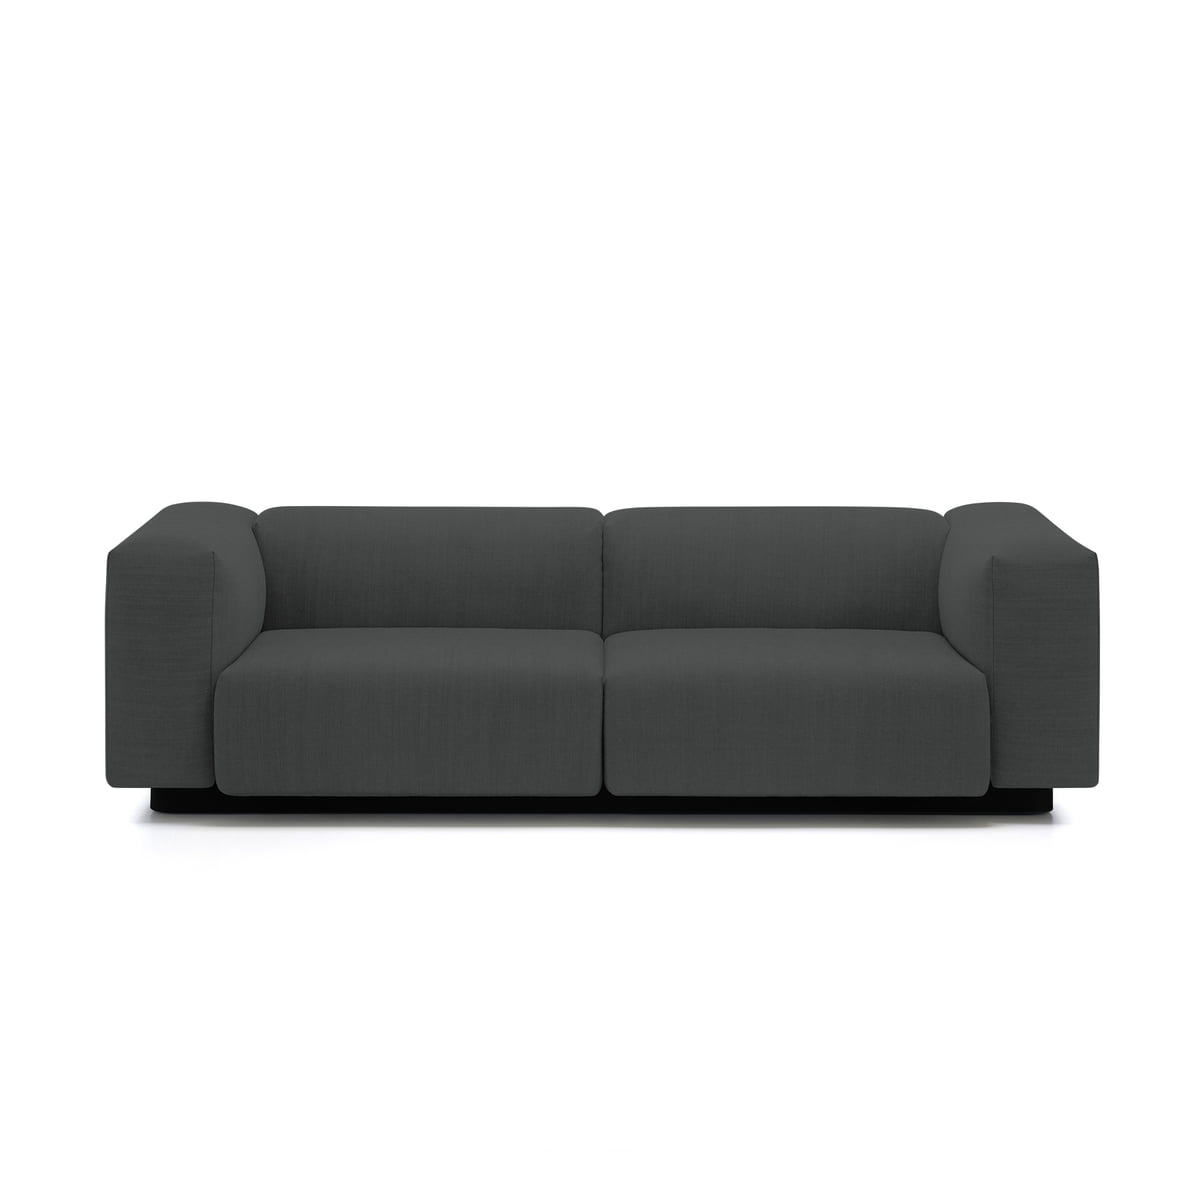 soft modular sofa 2 sitzer von vitra connox. Black Bedroom Furniture Sets. Home Design Ideas